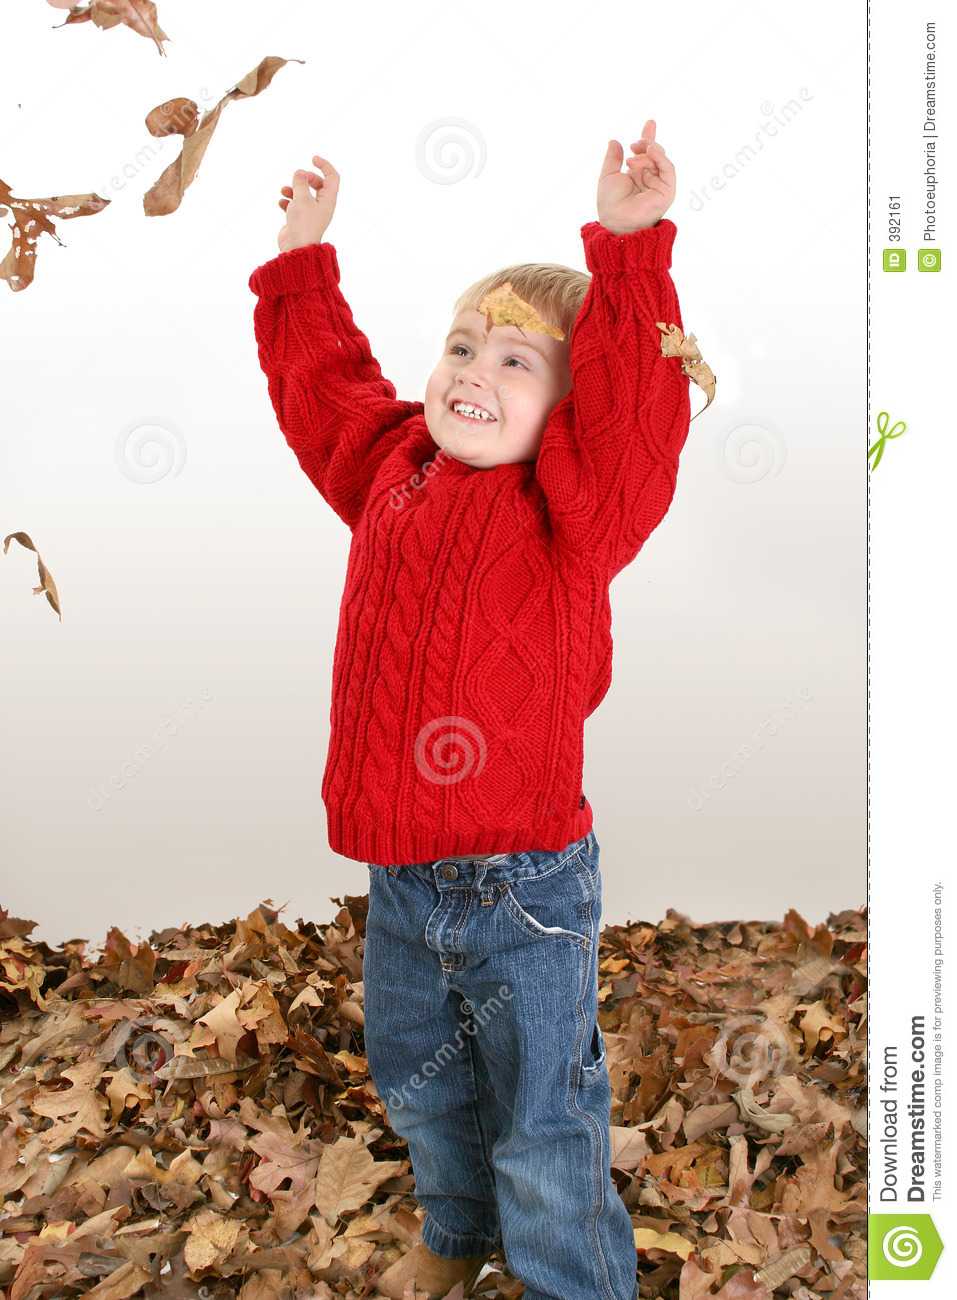 Adorable Two Year Old Playing In Leaves